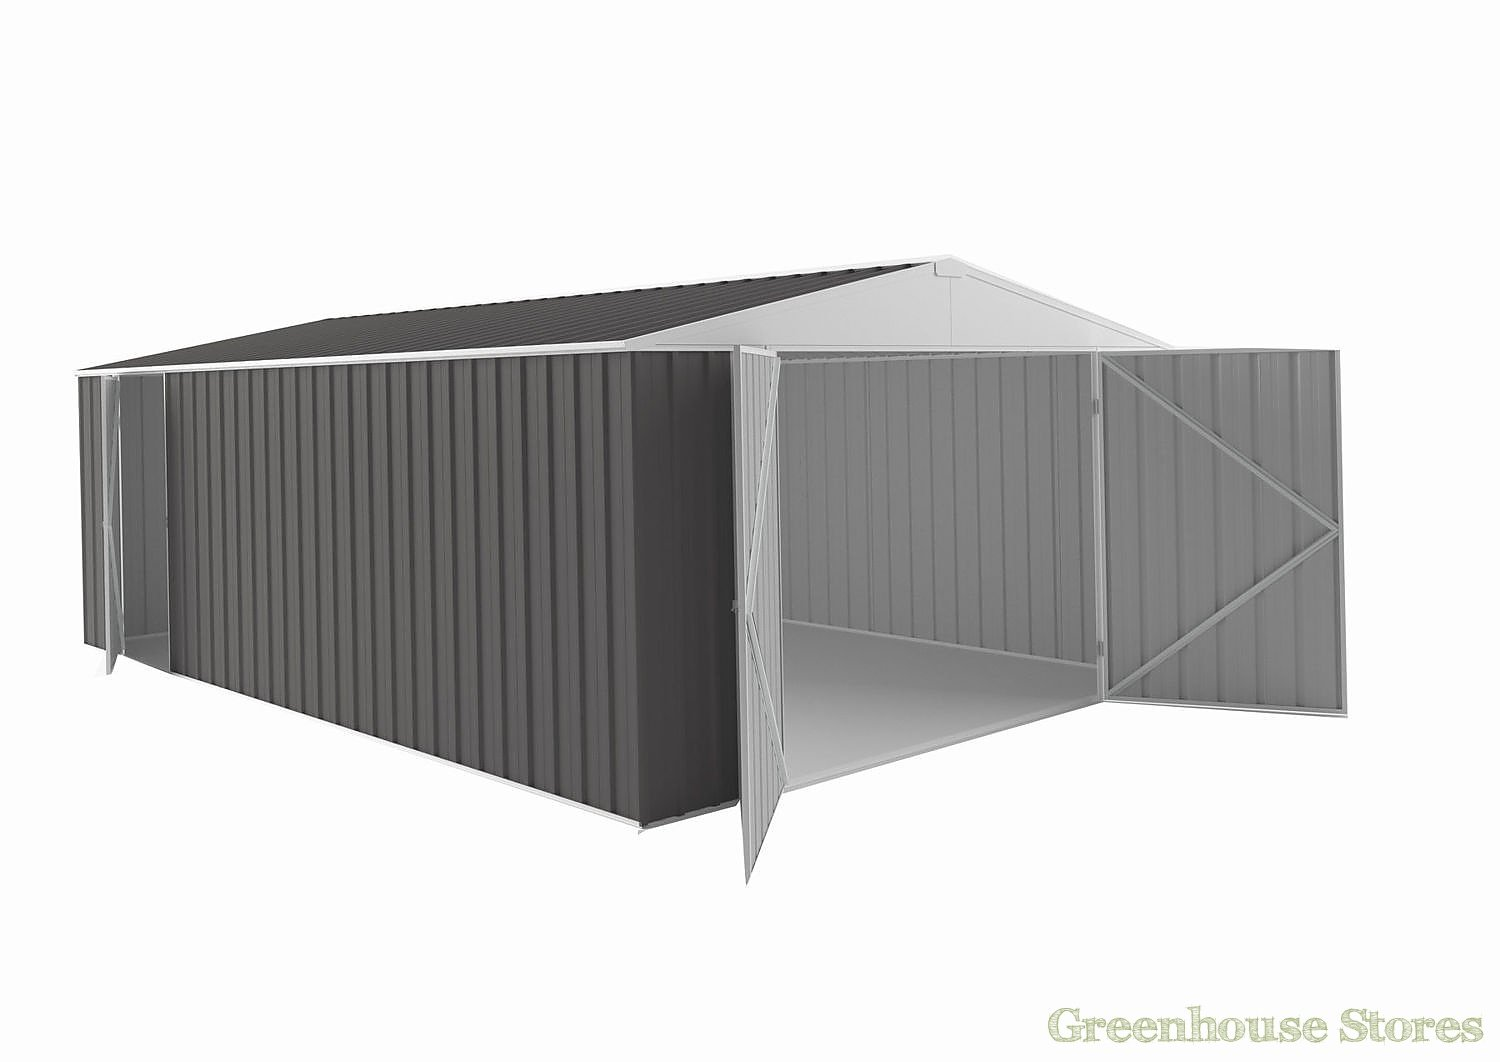 Melbourne 10x20 Metal Garage Greenhouse Stores